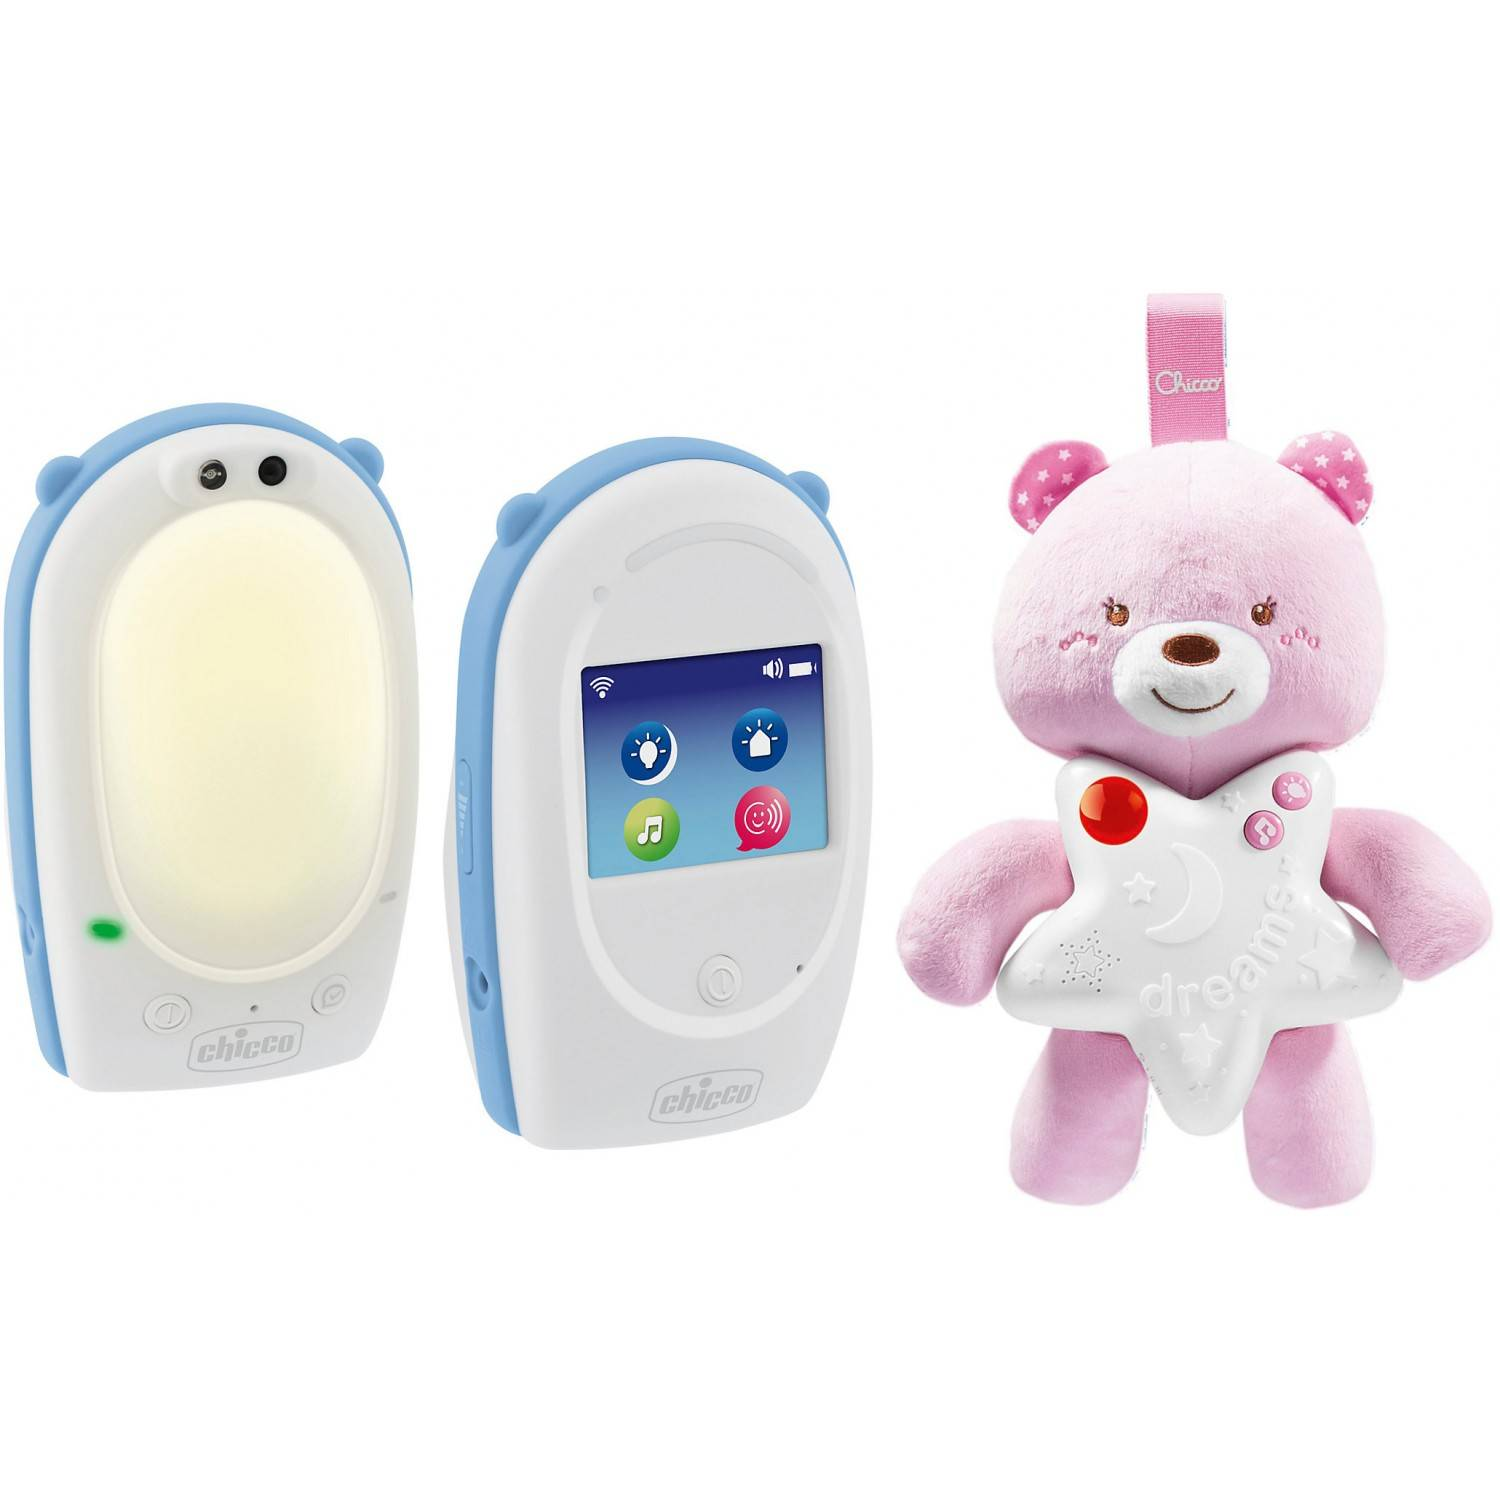 Chicco Baby Monitor e Peluche Luminoso Chicco Goodnight Friends Rosa